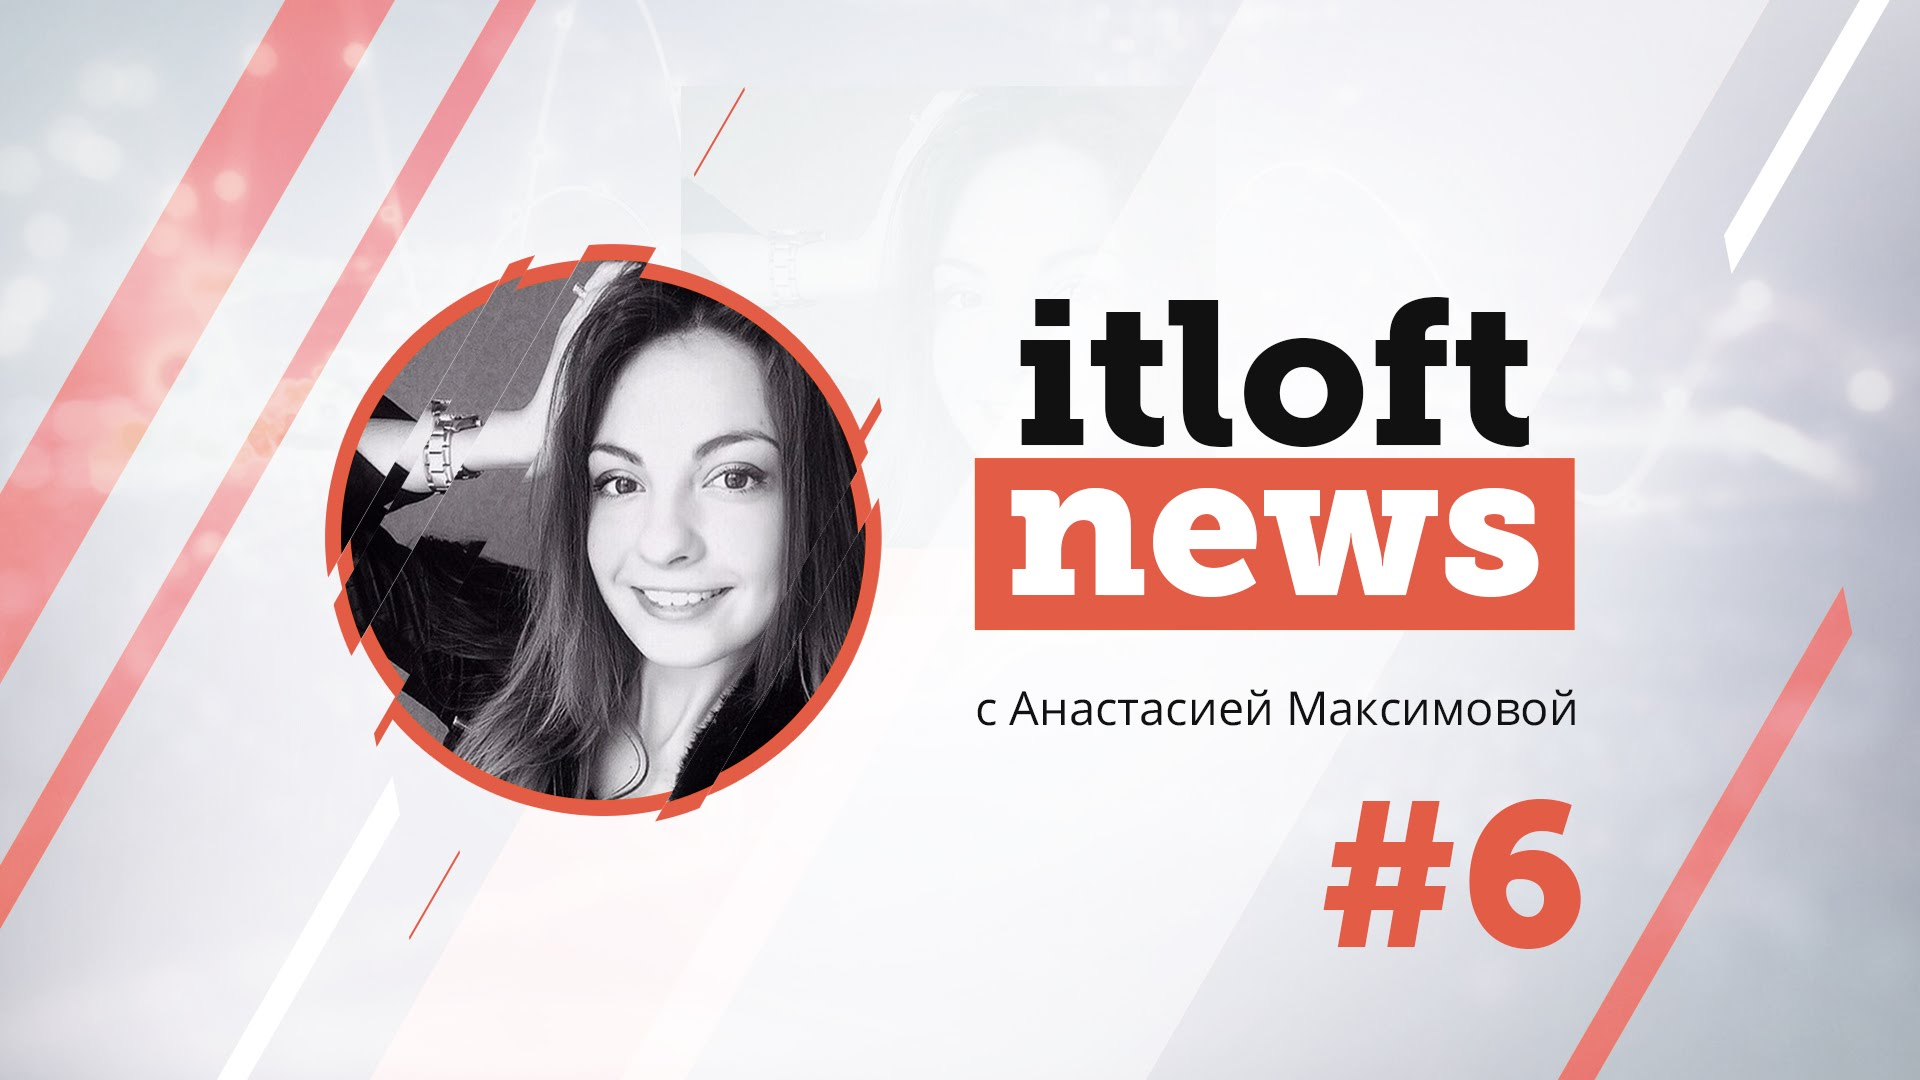 ITLOFT News #6 - Surfancy! Сбербанк! Instagram!  - «Видео уроки - CSS»